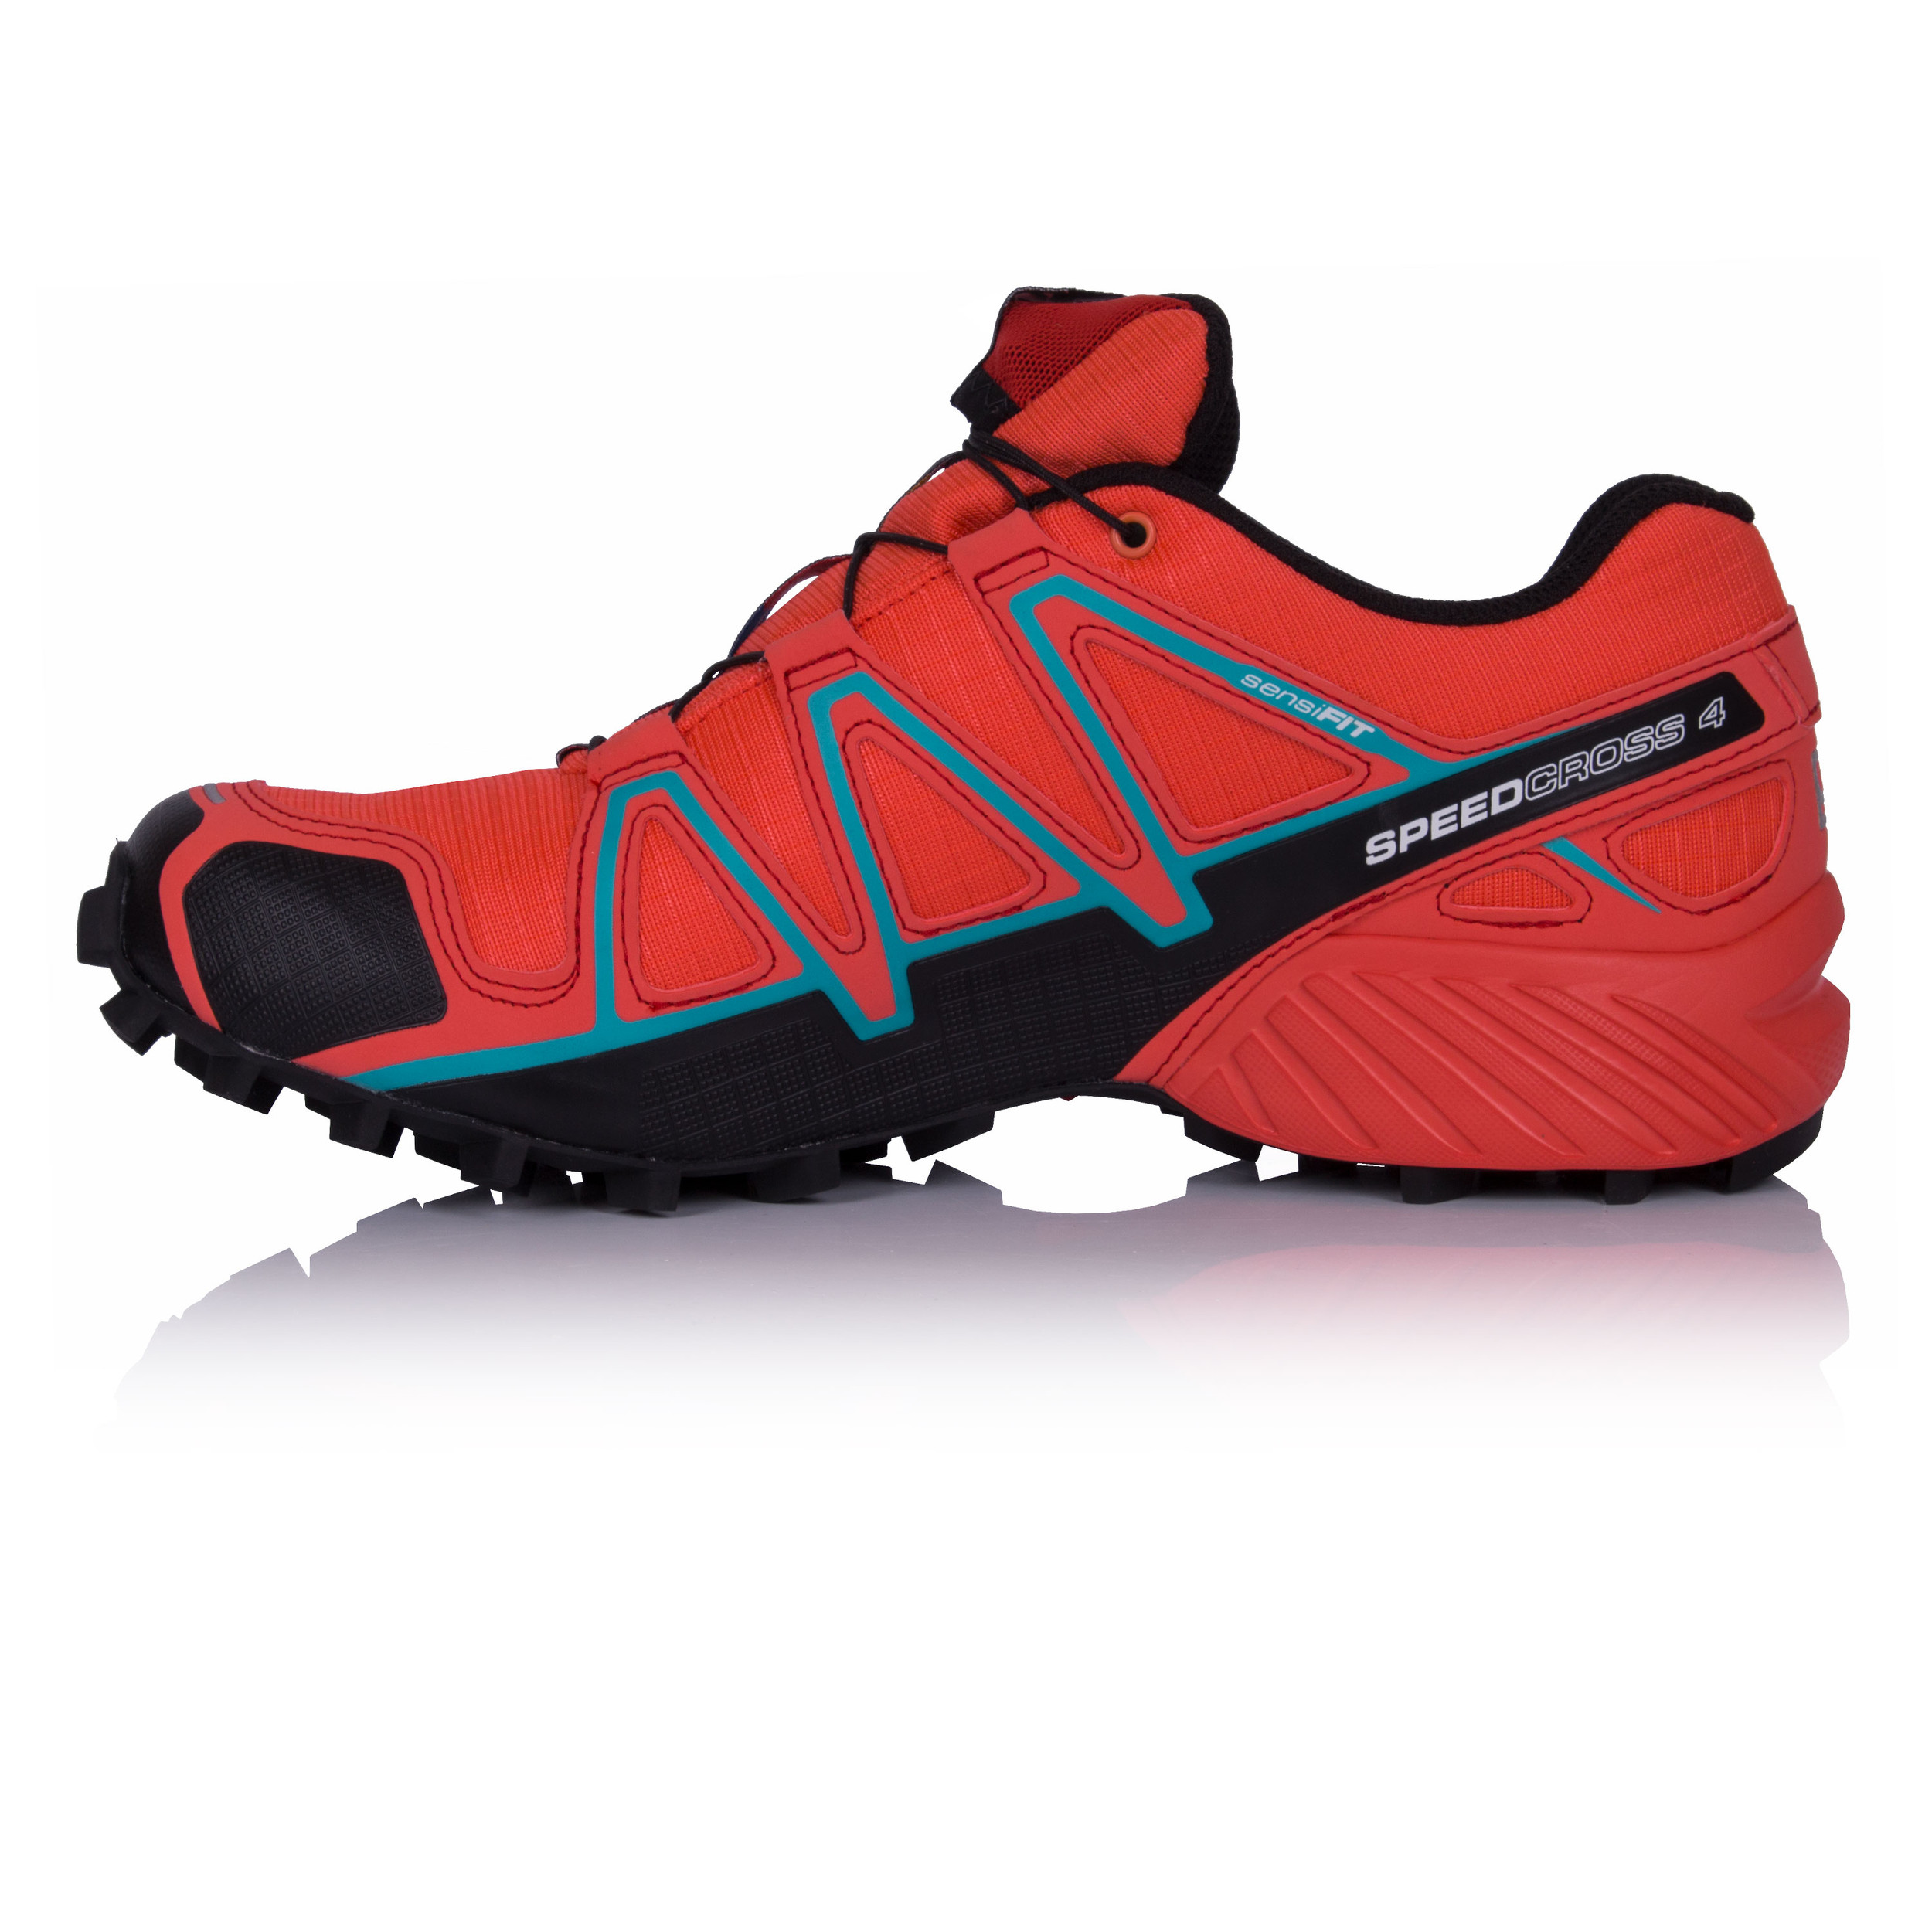 Salomon Speedcross Waterproof 4 Gore Tex Damenschuhe ROT Waterproof Speedcross Trail Running Schuhes 997998